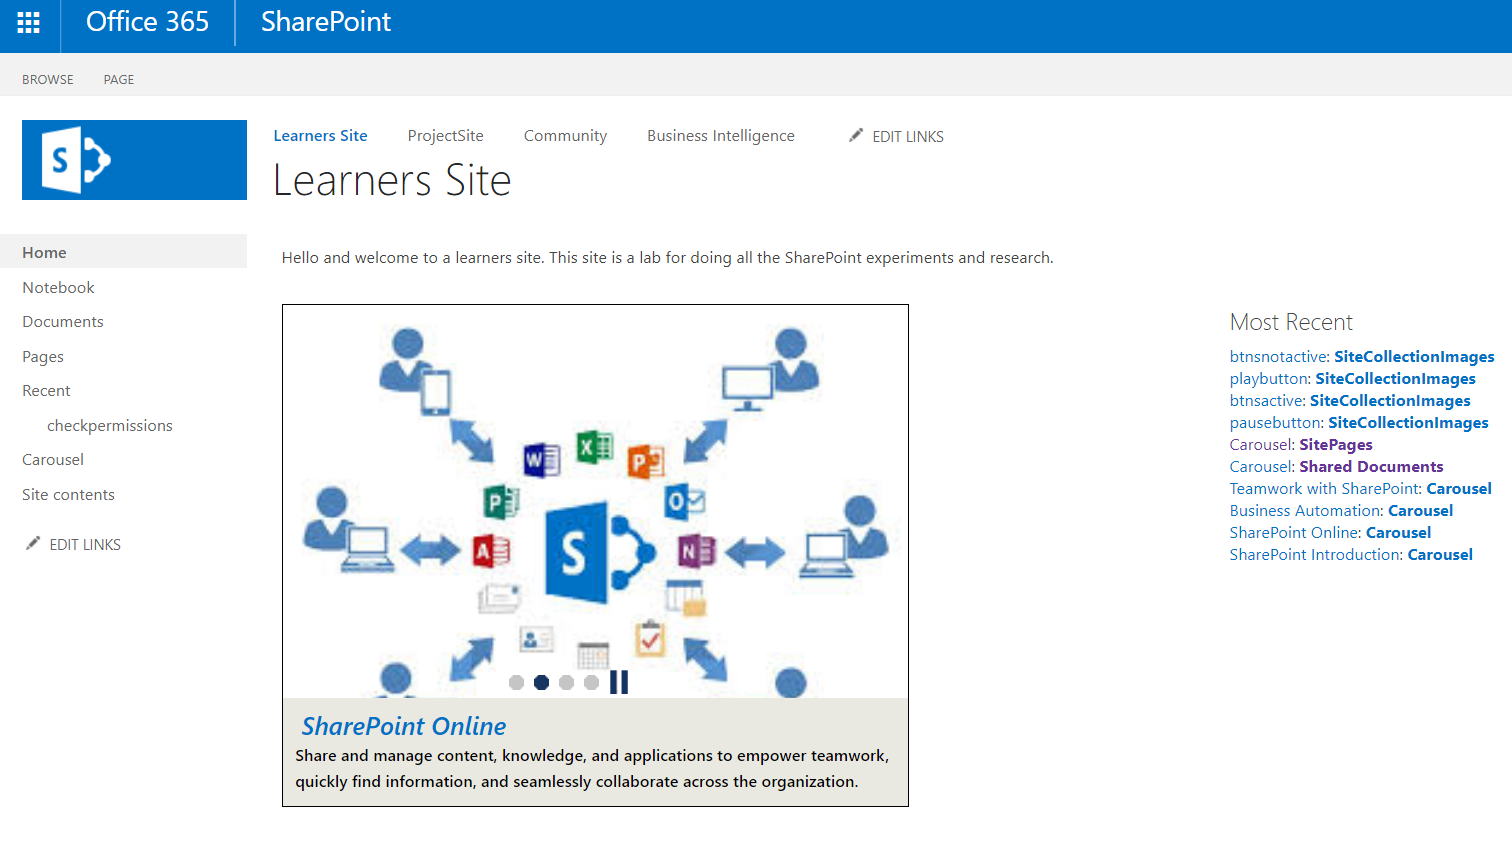 Build a carousel in SharePoint from SharePoint list items